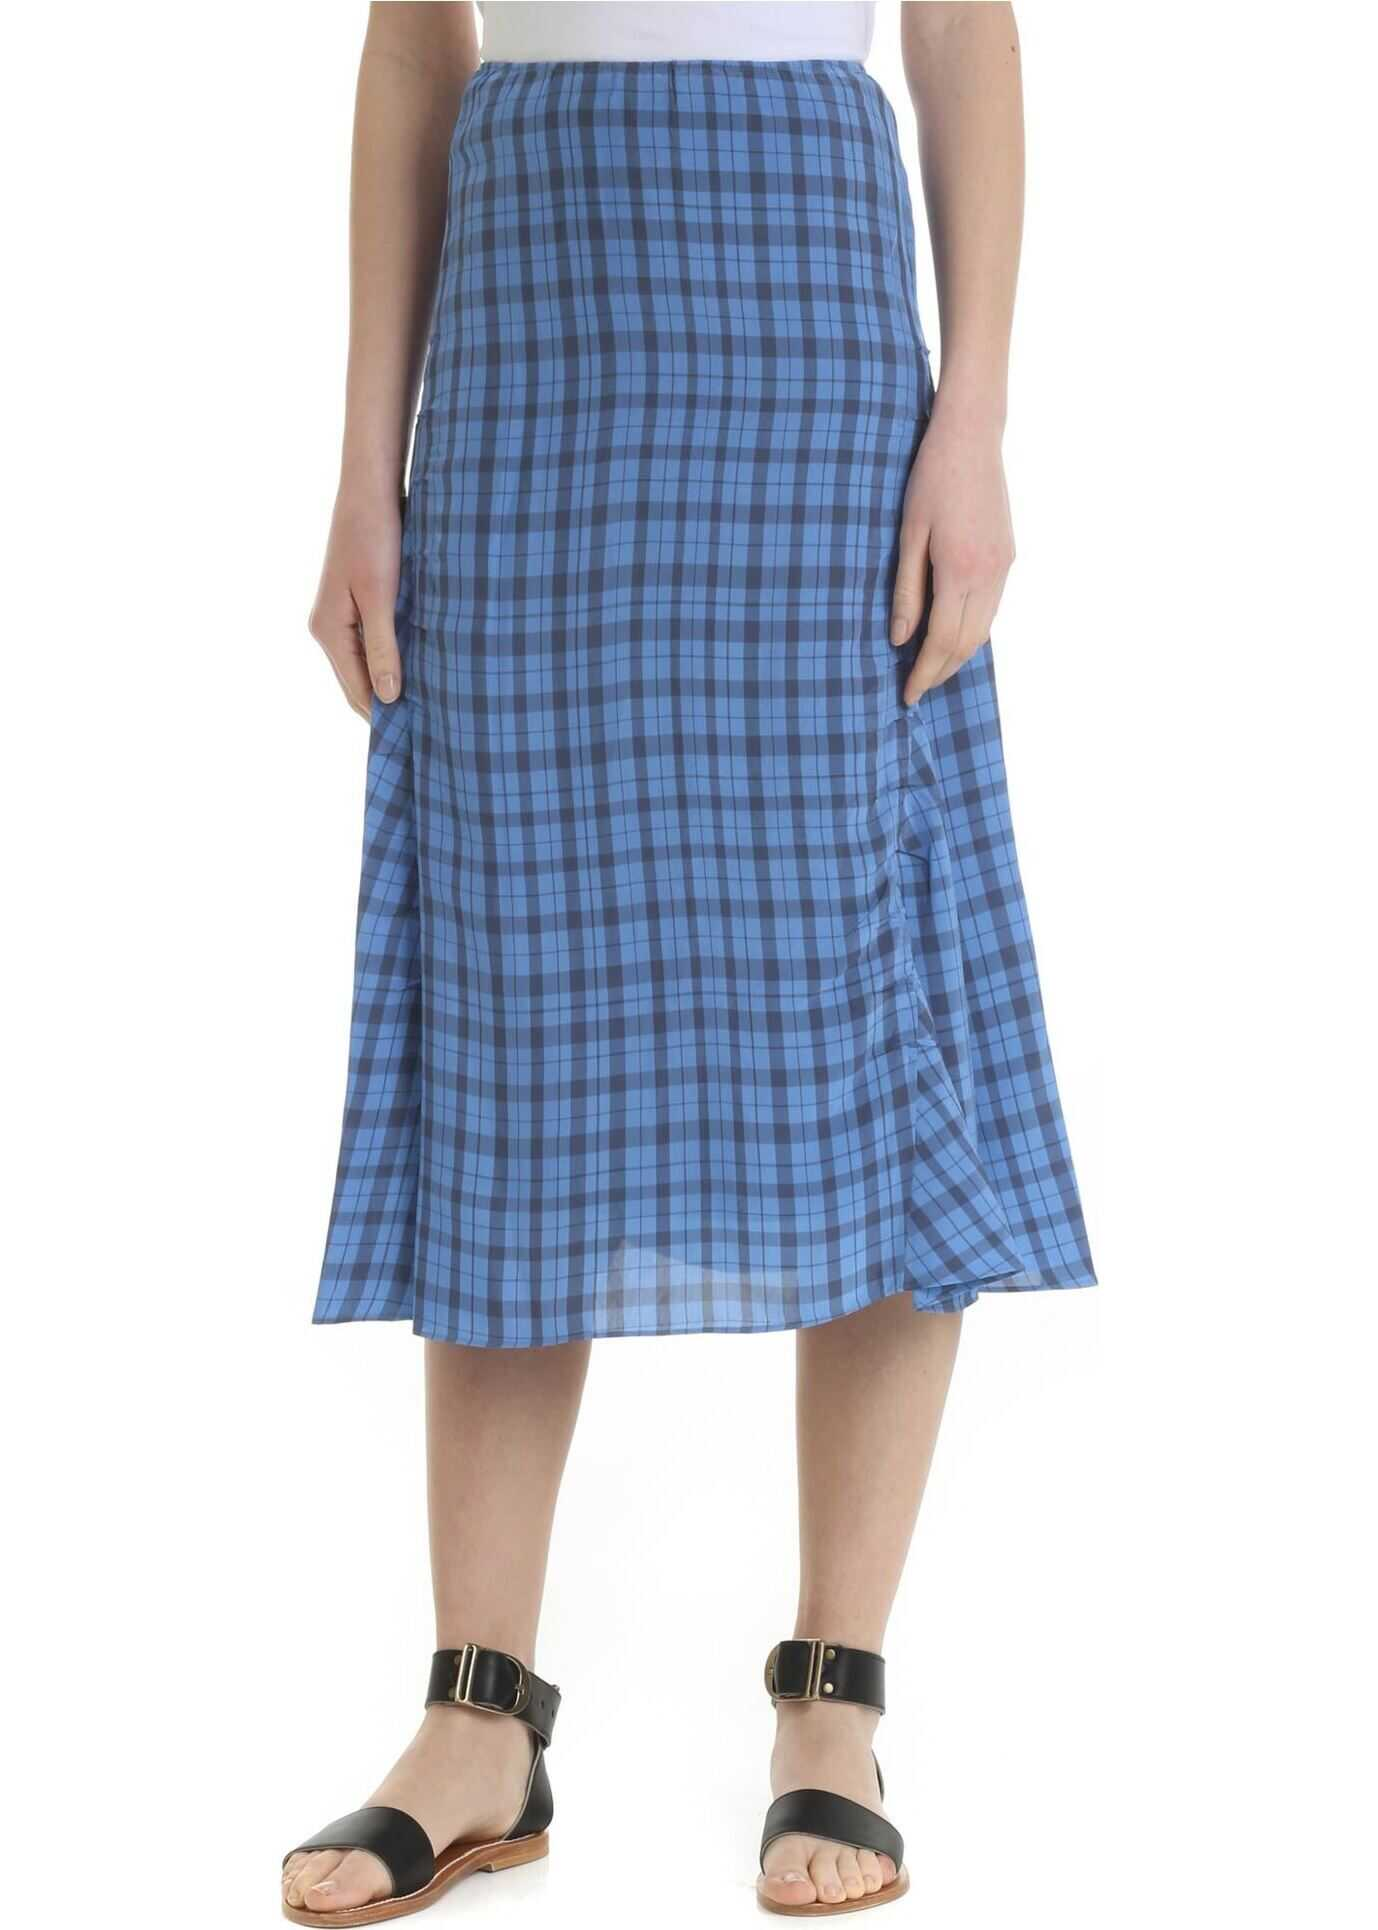 Acne Studios Blue Skirt With Checked Pattern Light Blue